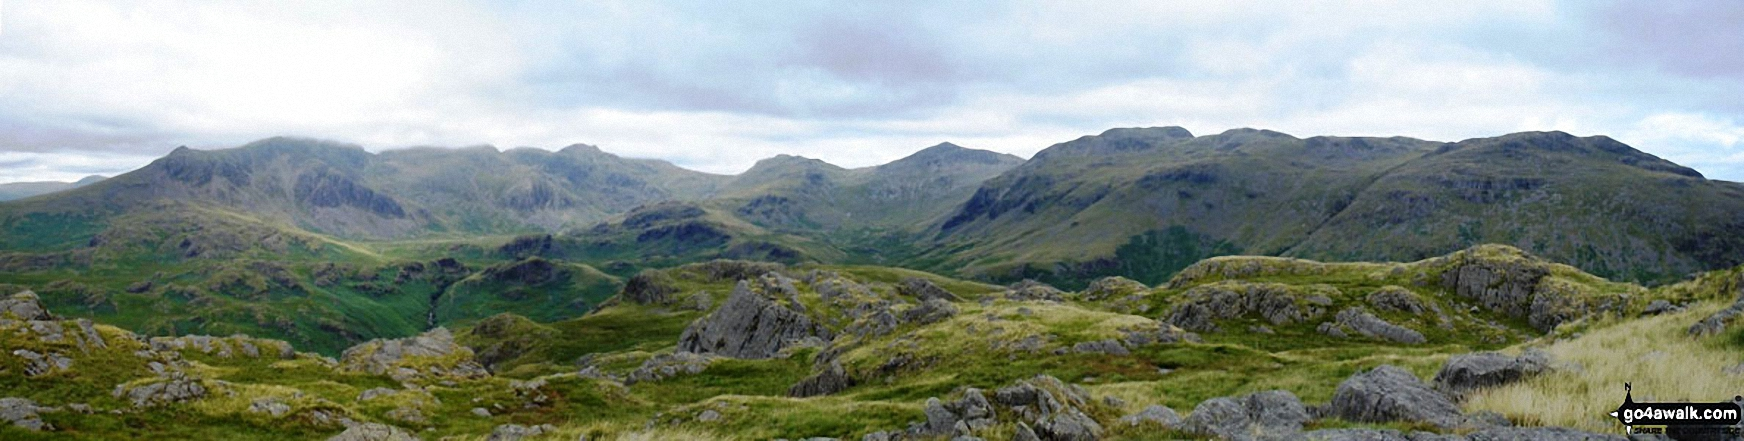 *Northernly Panorama from the summit of Hard Knott featuring Sca Fell, Scafell Pike, Esk Pike, Bow Fell (Bowfell), Gunson Knott, Crinkle Crags (Long Top) and Crinkle Crags (South Top)